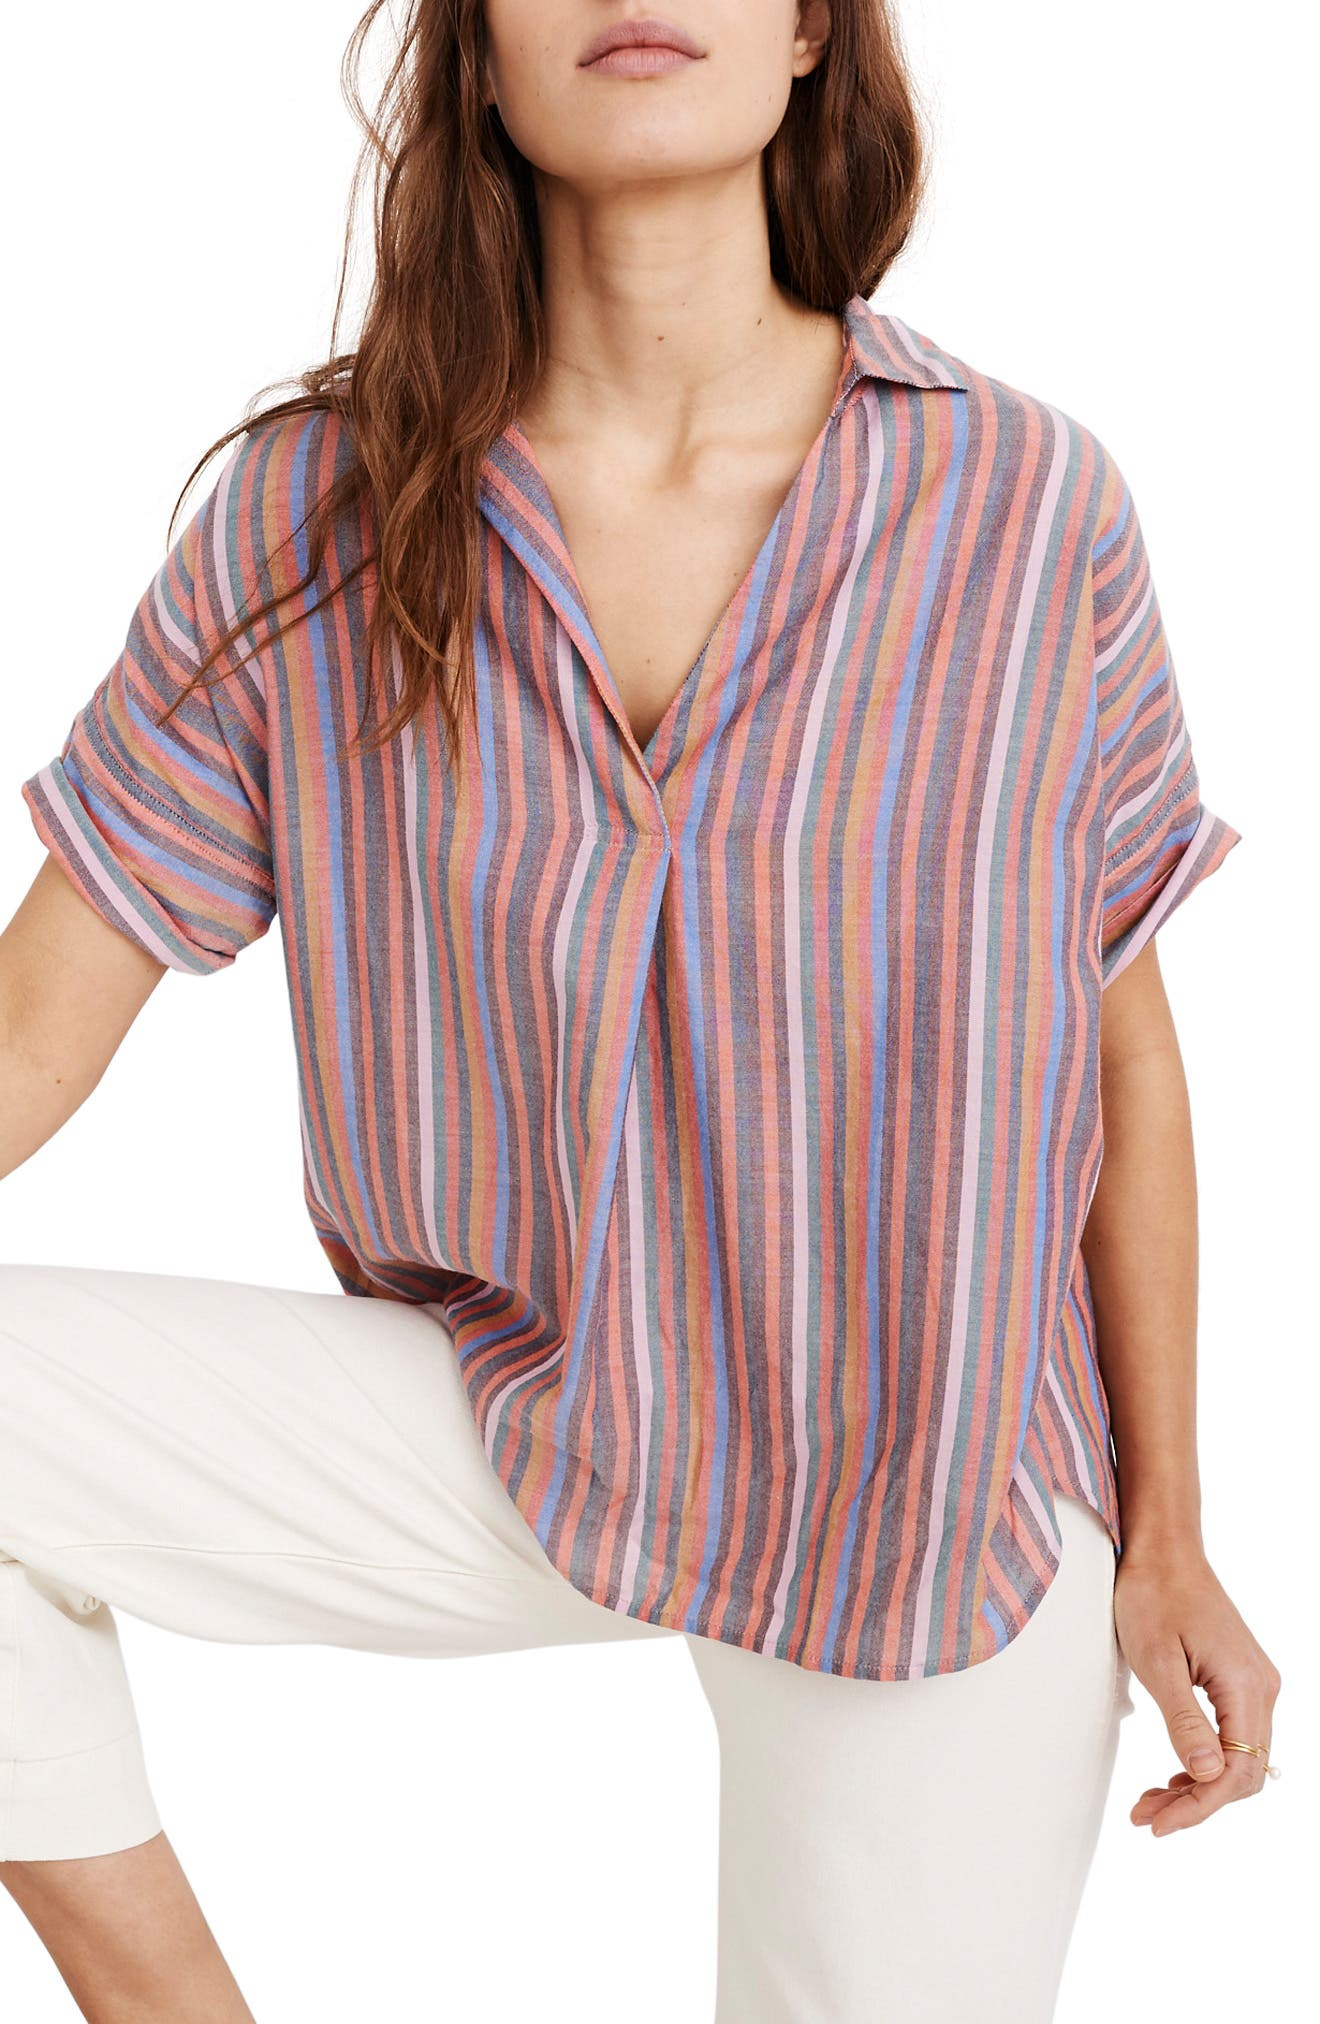 MADEWELL, Courier Rainbow Stripe Button Back Shirt, Main thumbnail 1, color, MULLED WINE SMITH STRIPE